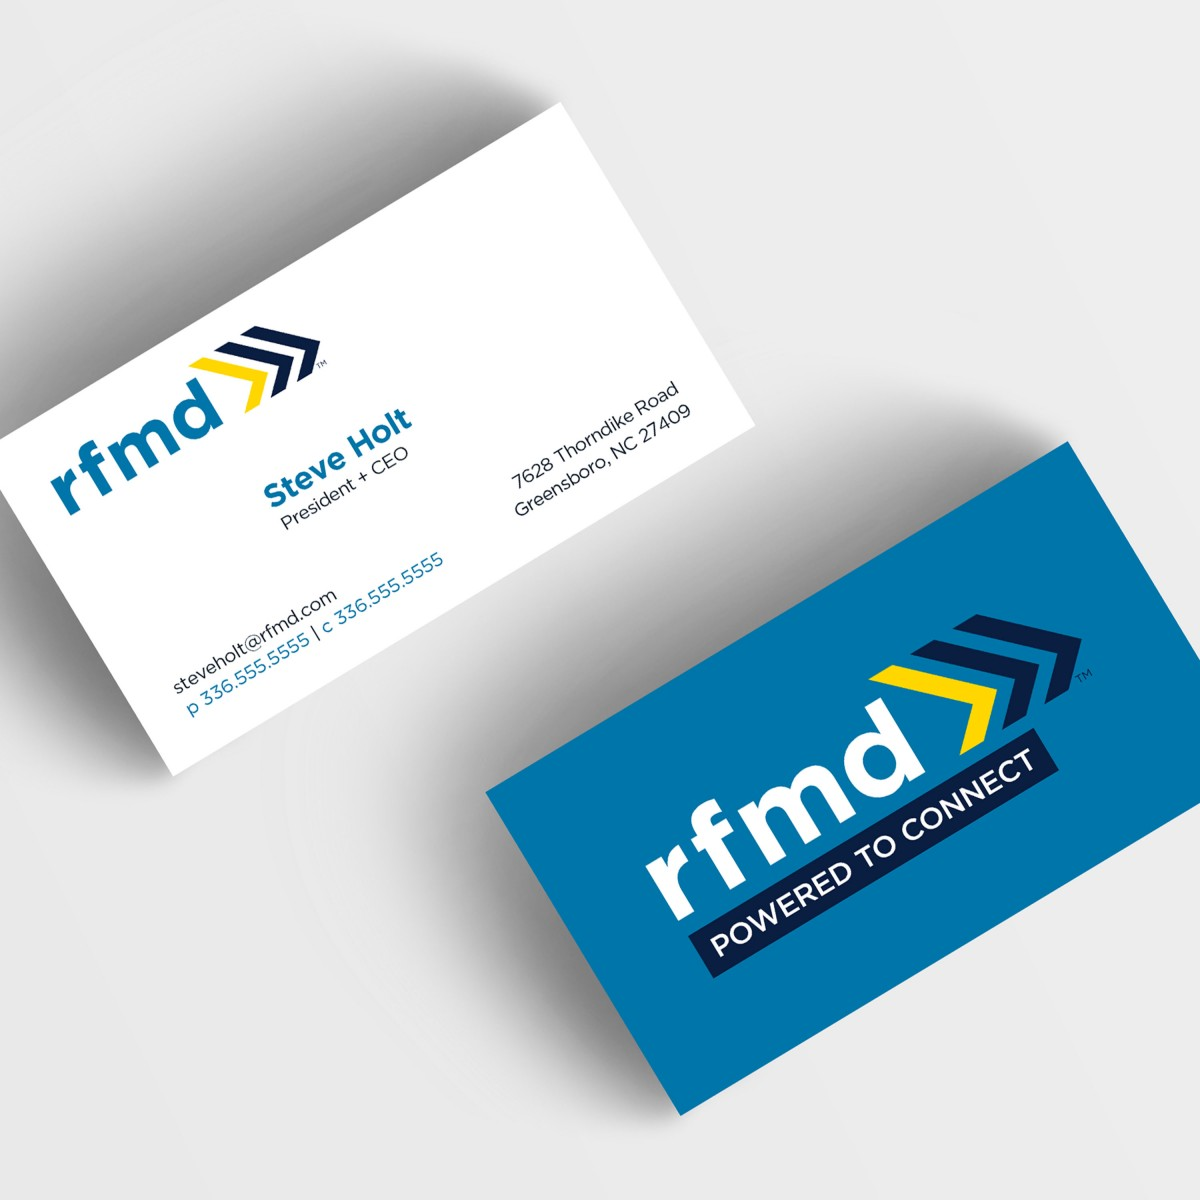 RFMD business cards